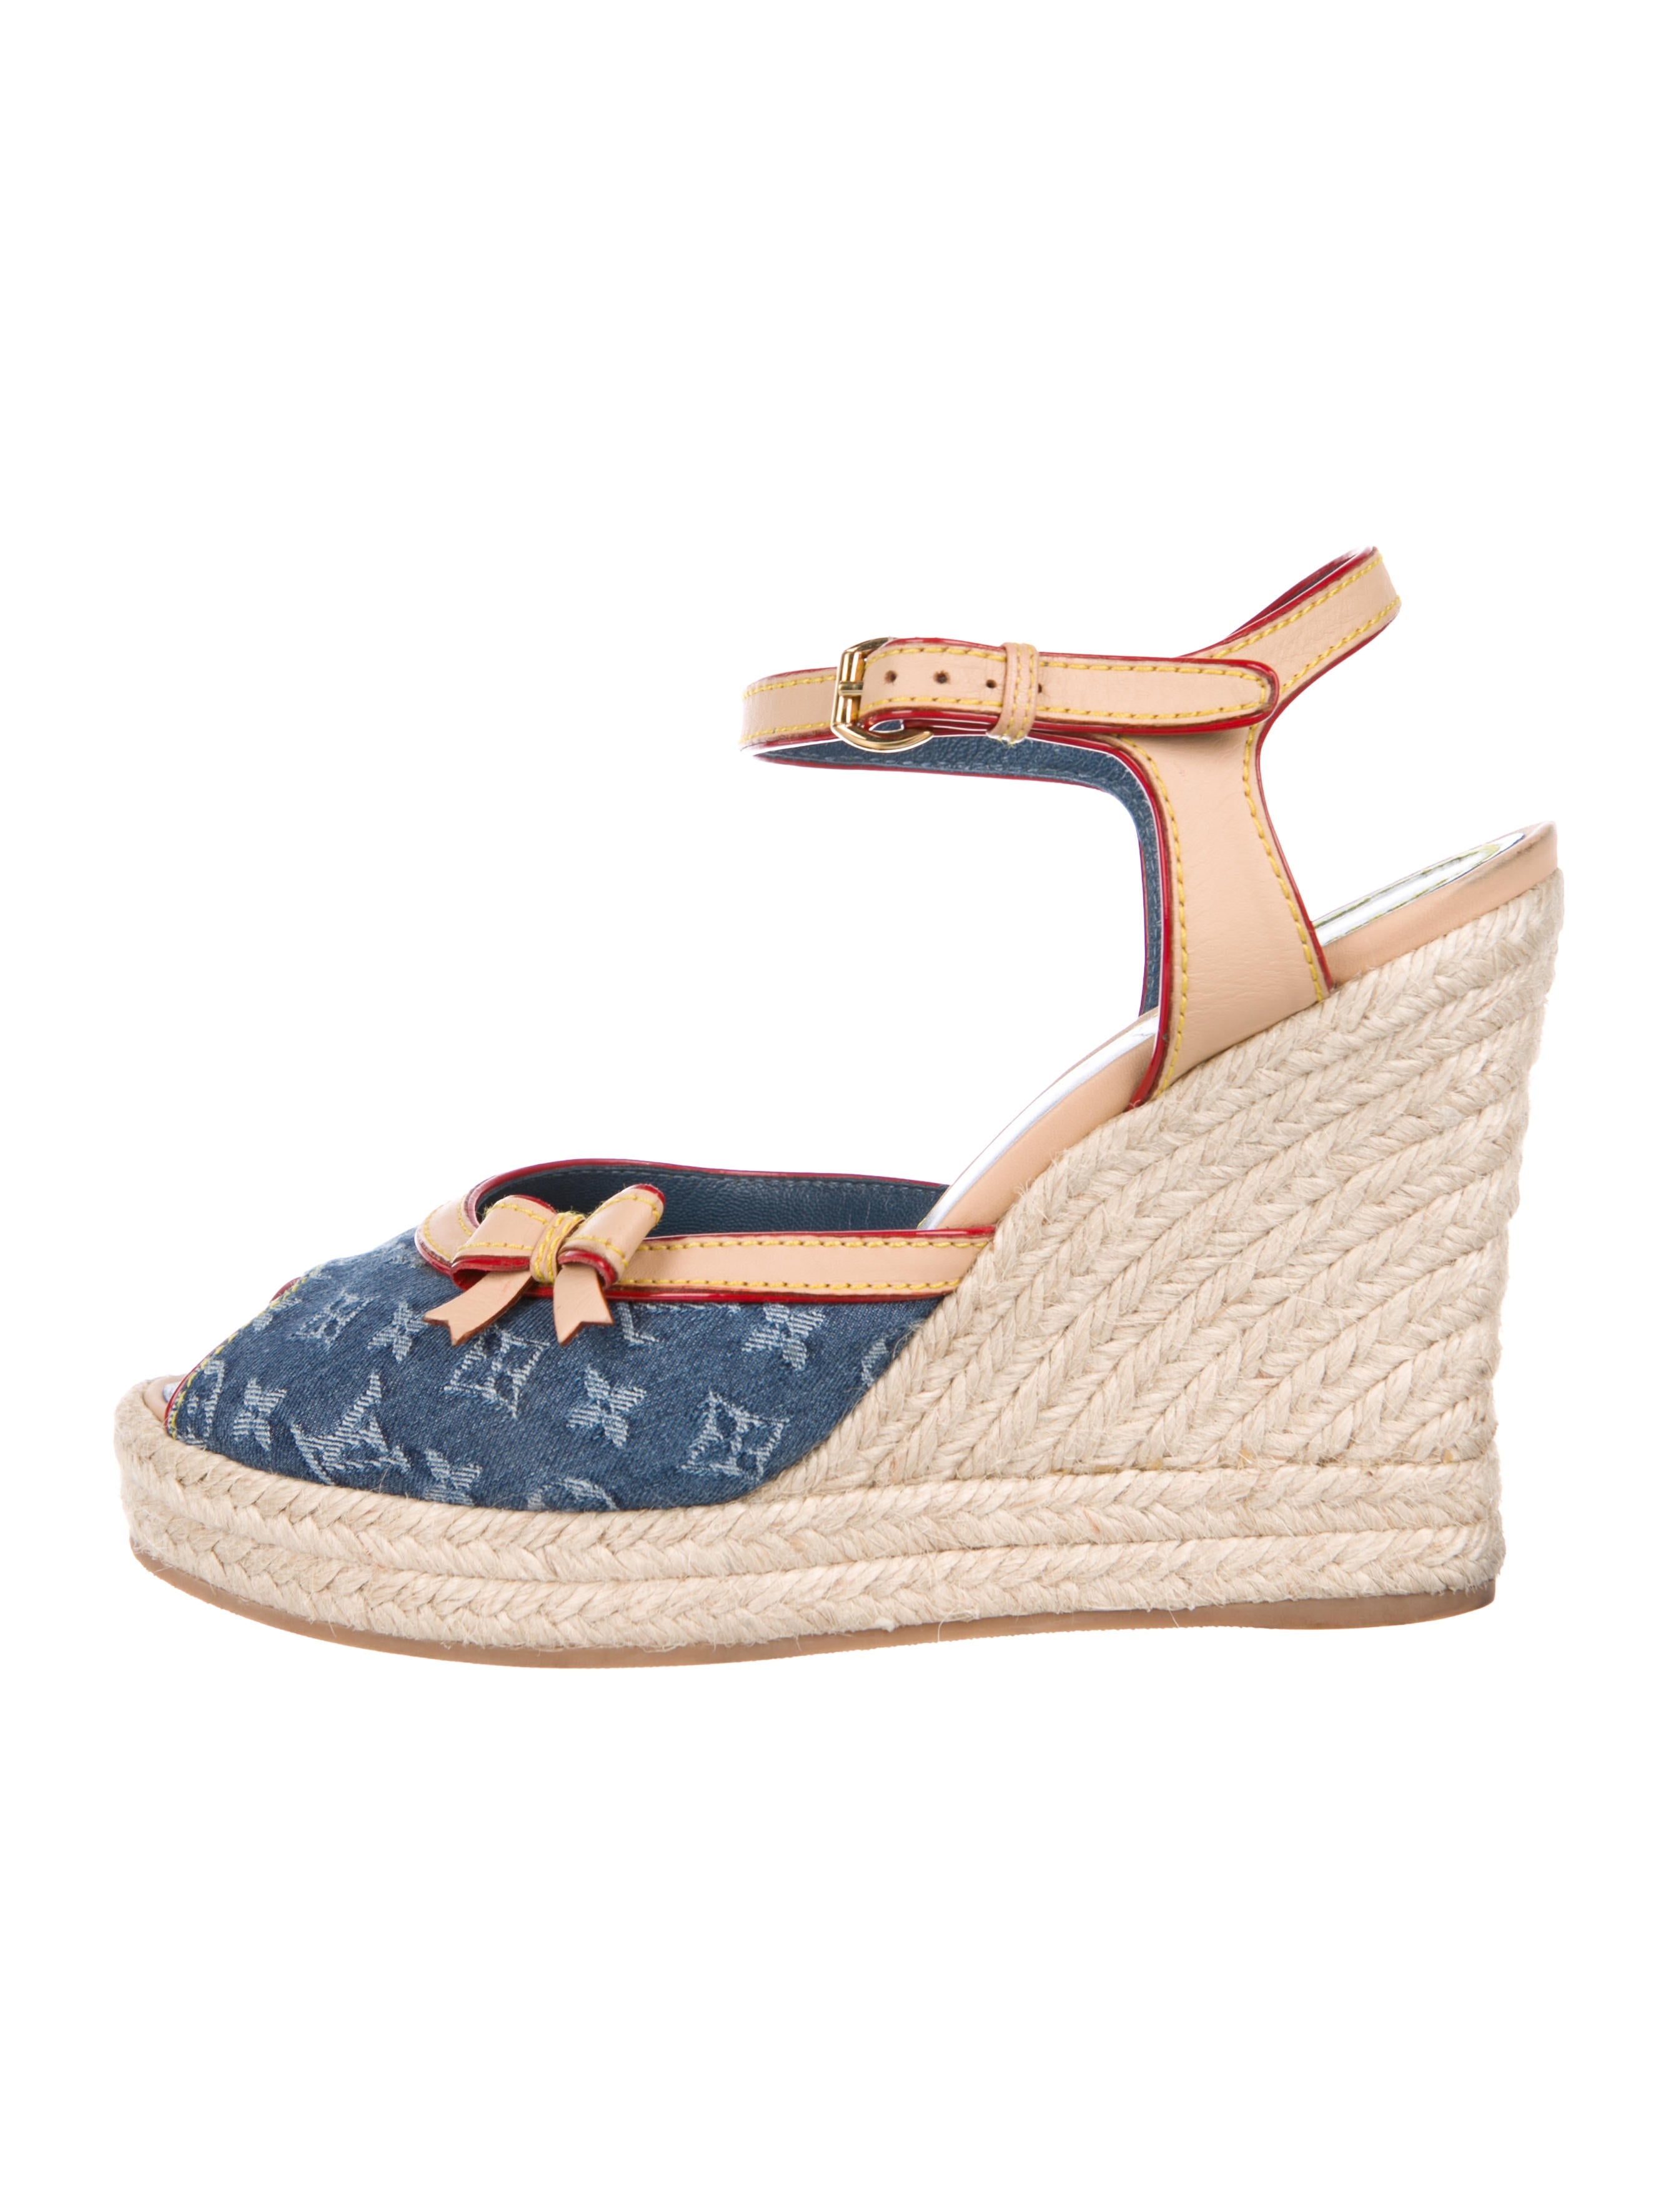 89f67aa9cdb Louis Vuitton Monogram Idylle Espadrille Wedges - Shoes - LOU181173 ...